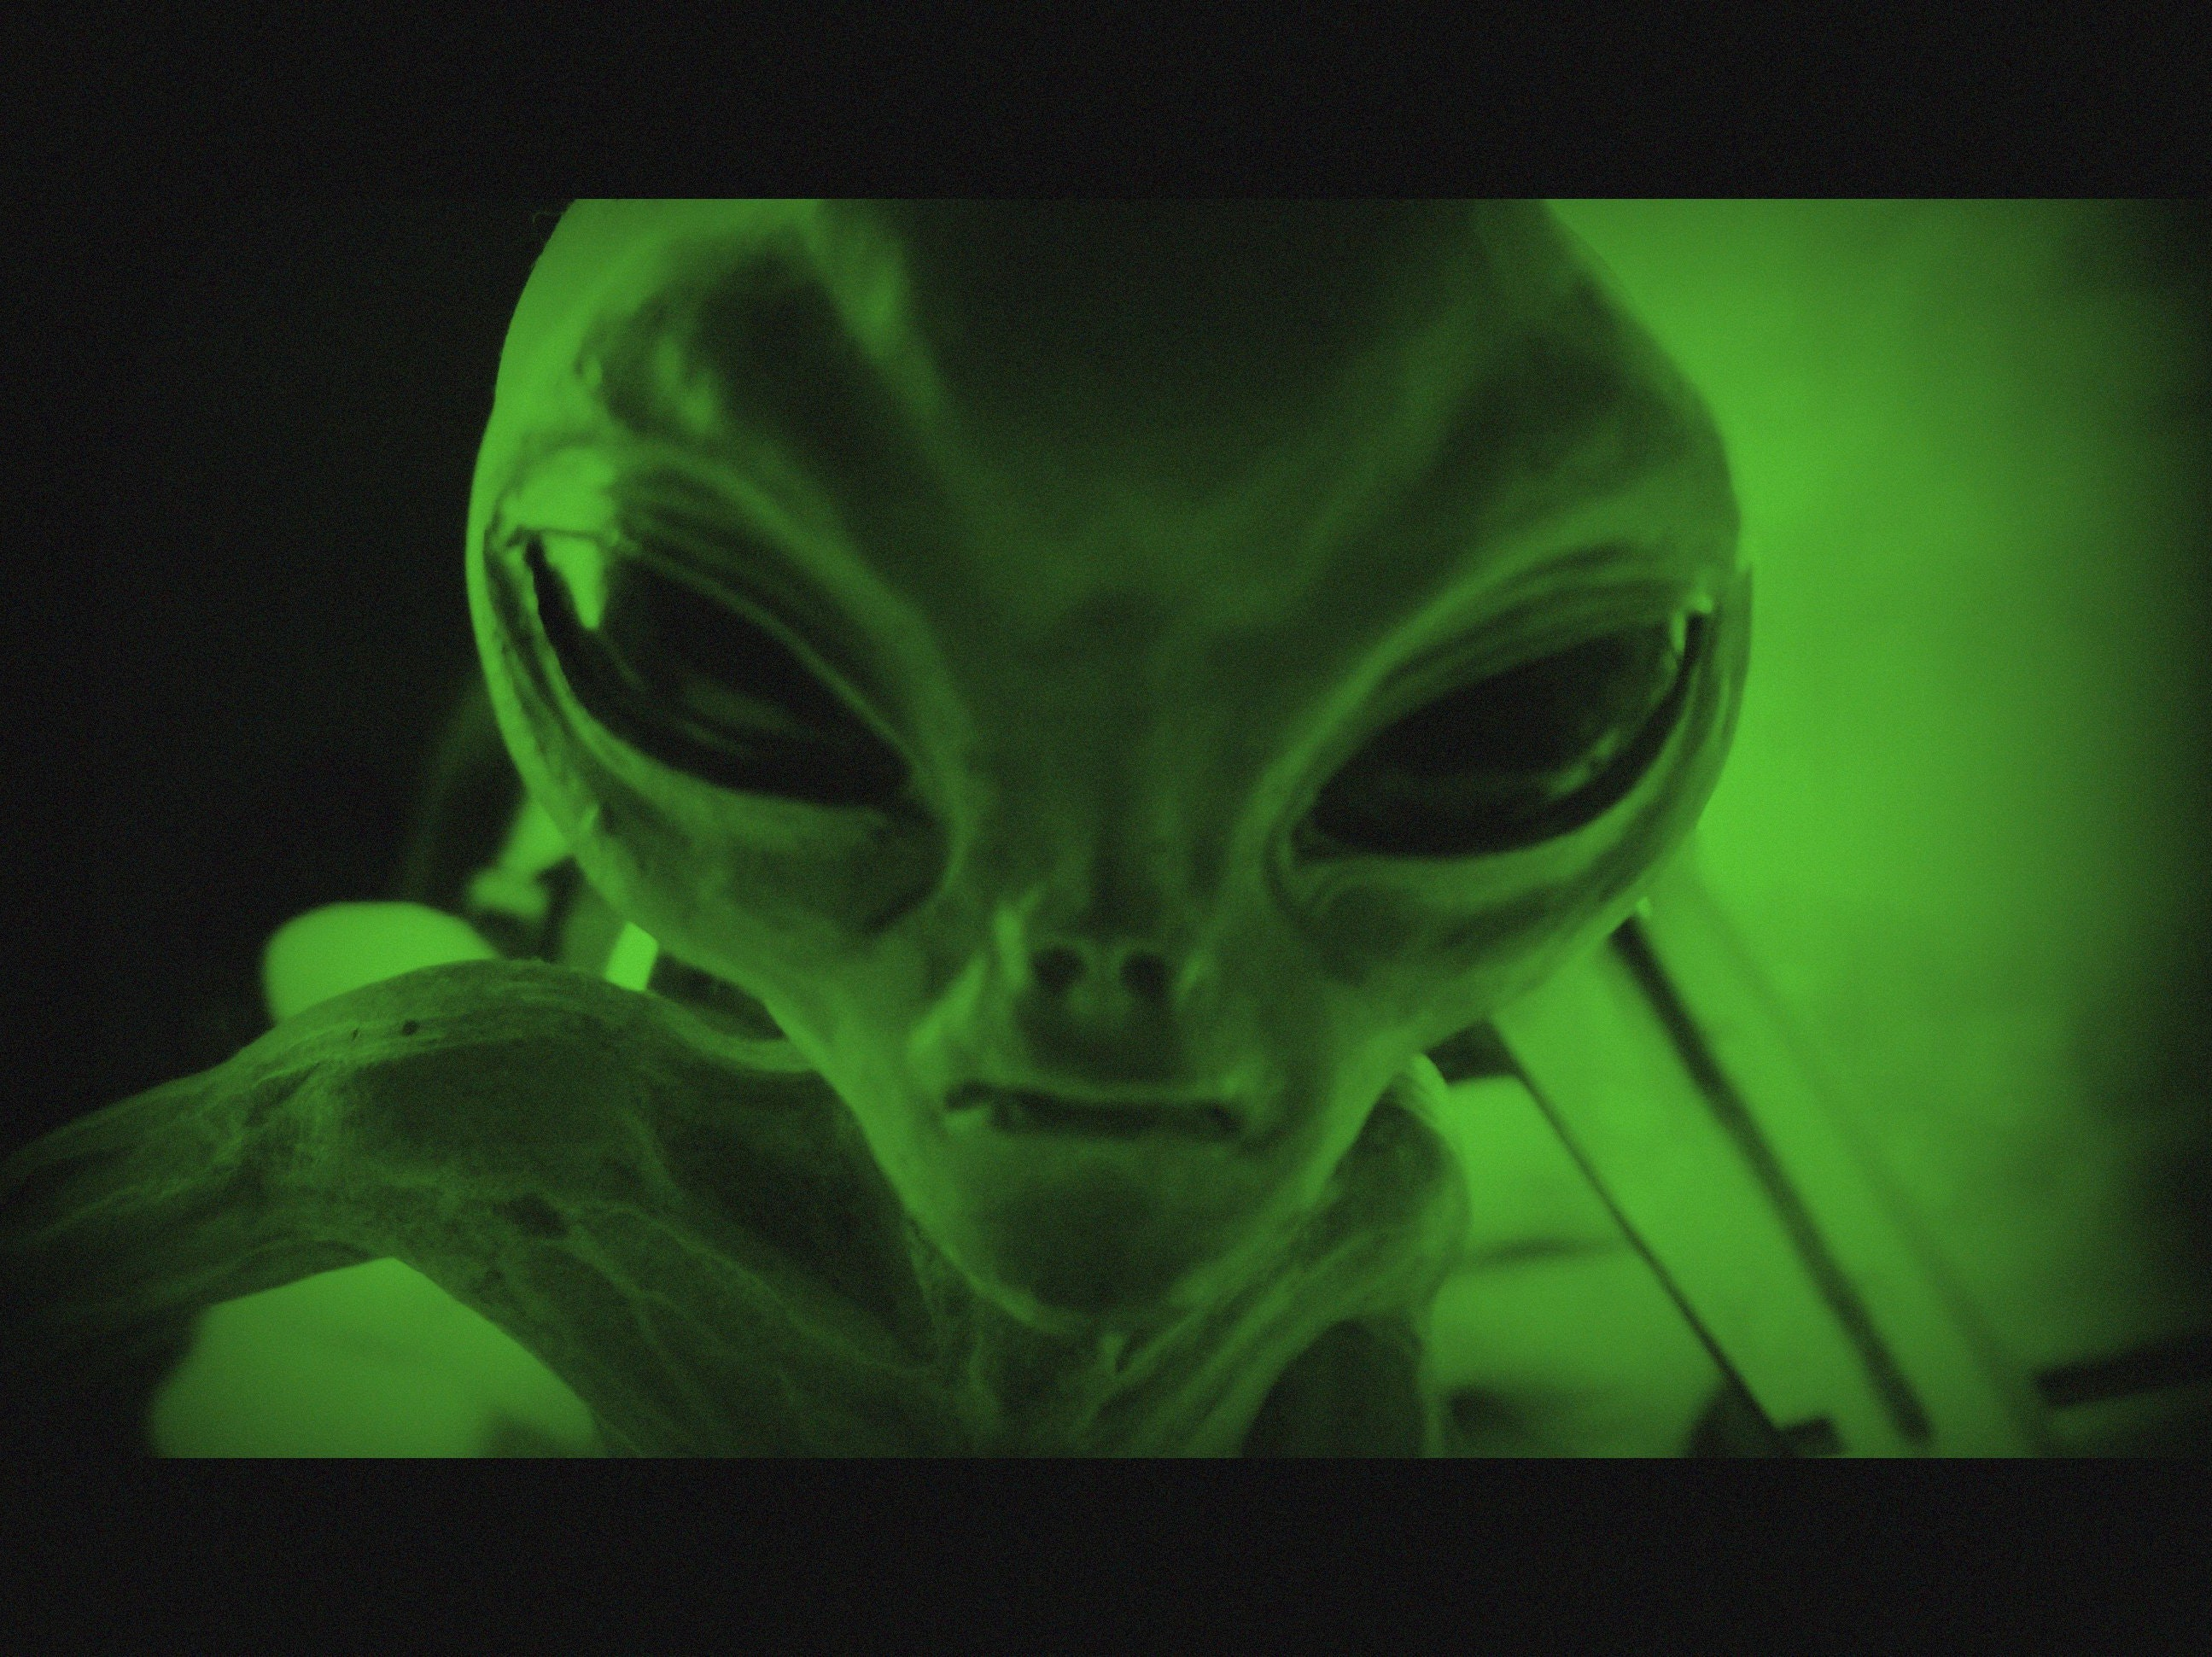 The Search for Aliens Has Become a Grassroots Movement for Billionaires